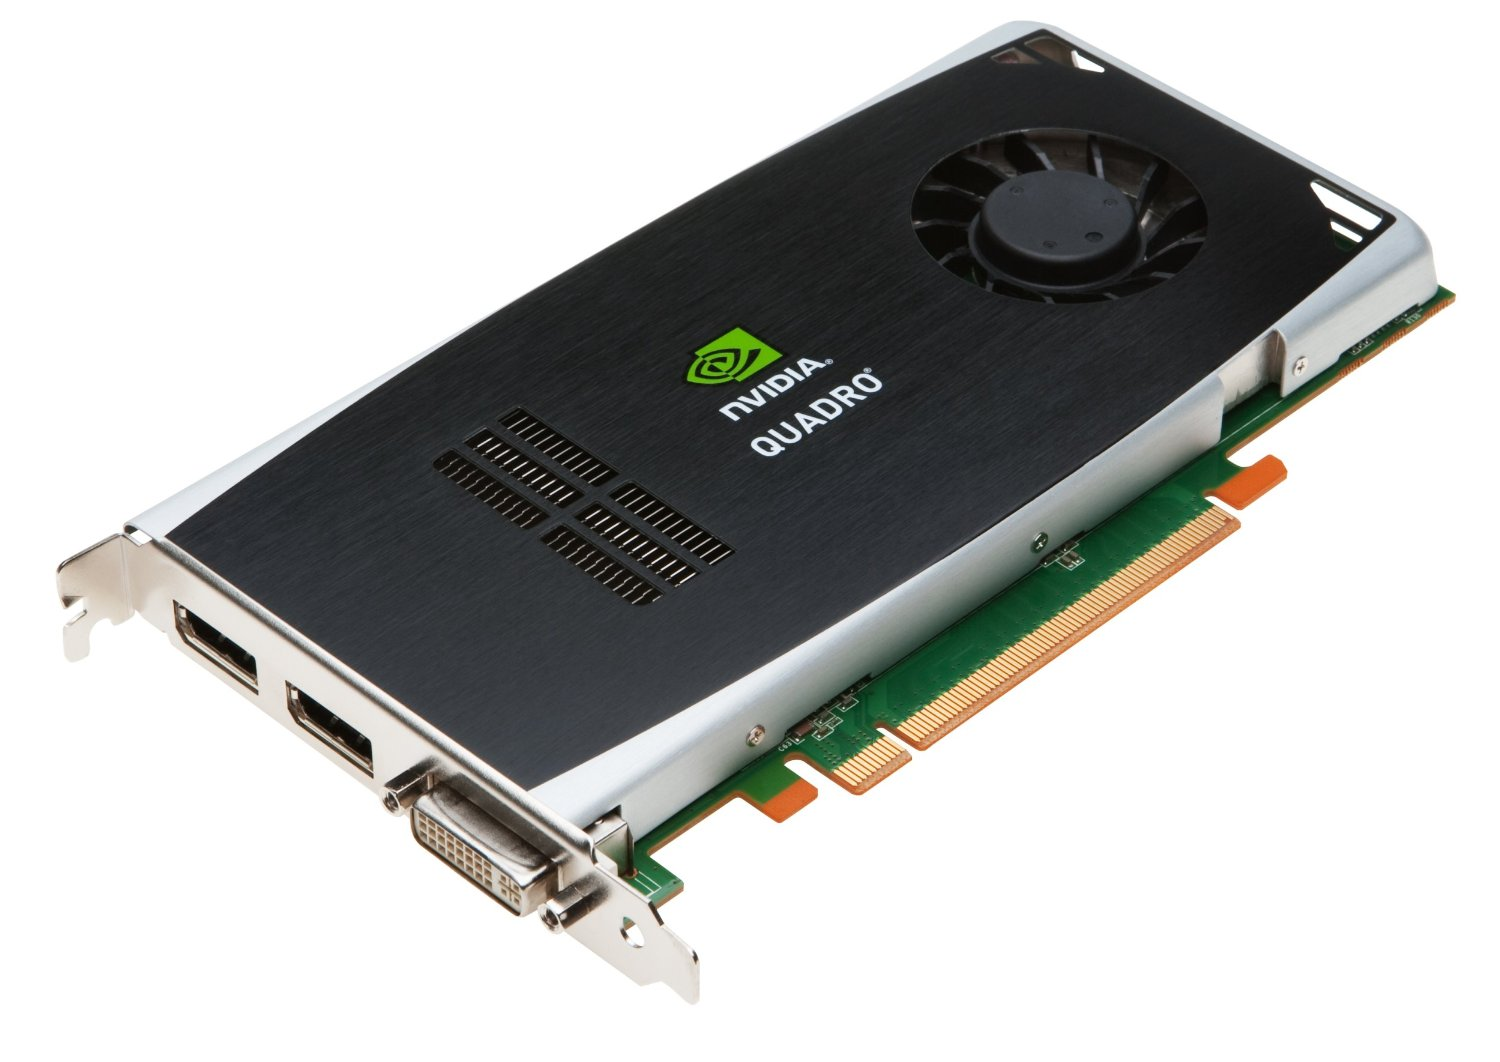 PNY VCQFX1800-PCIE-PB Nvidia Quadro FX 1800 768MB GDDR3 PCI-Express Video Card